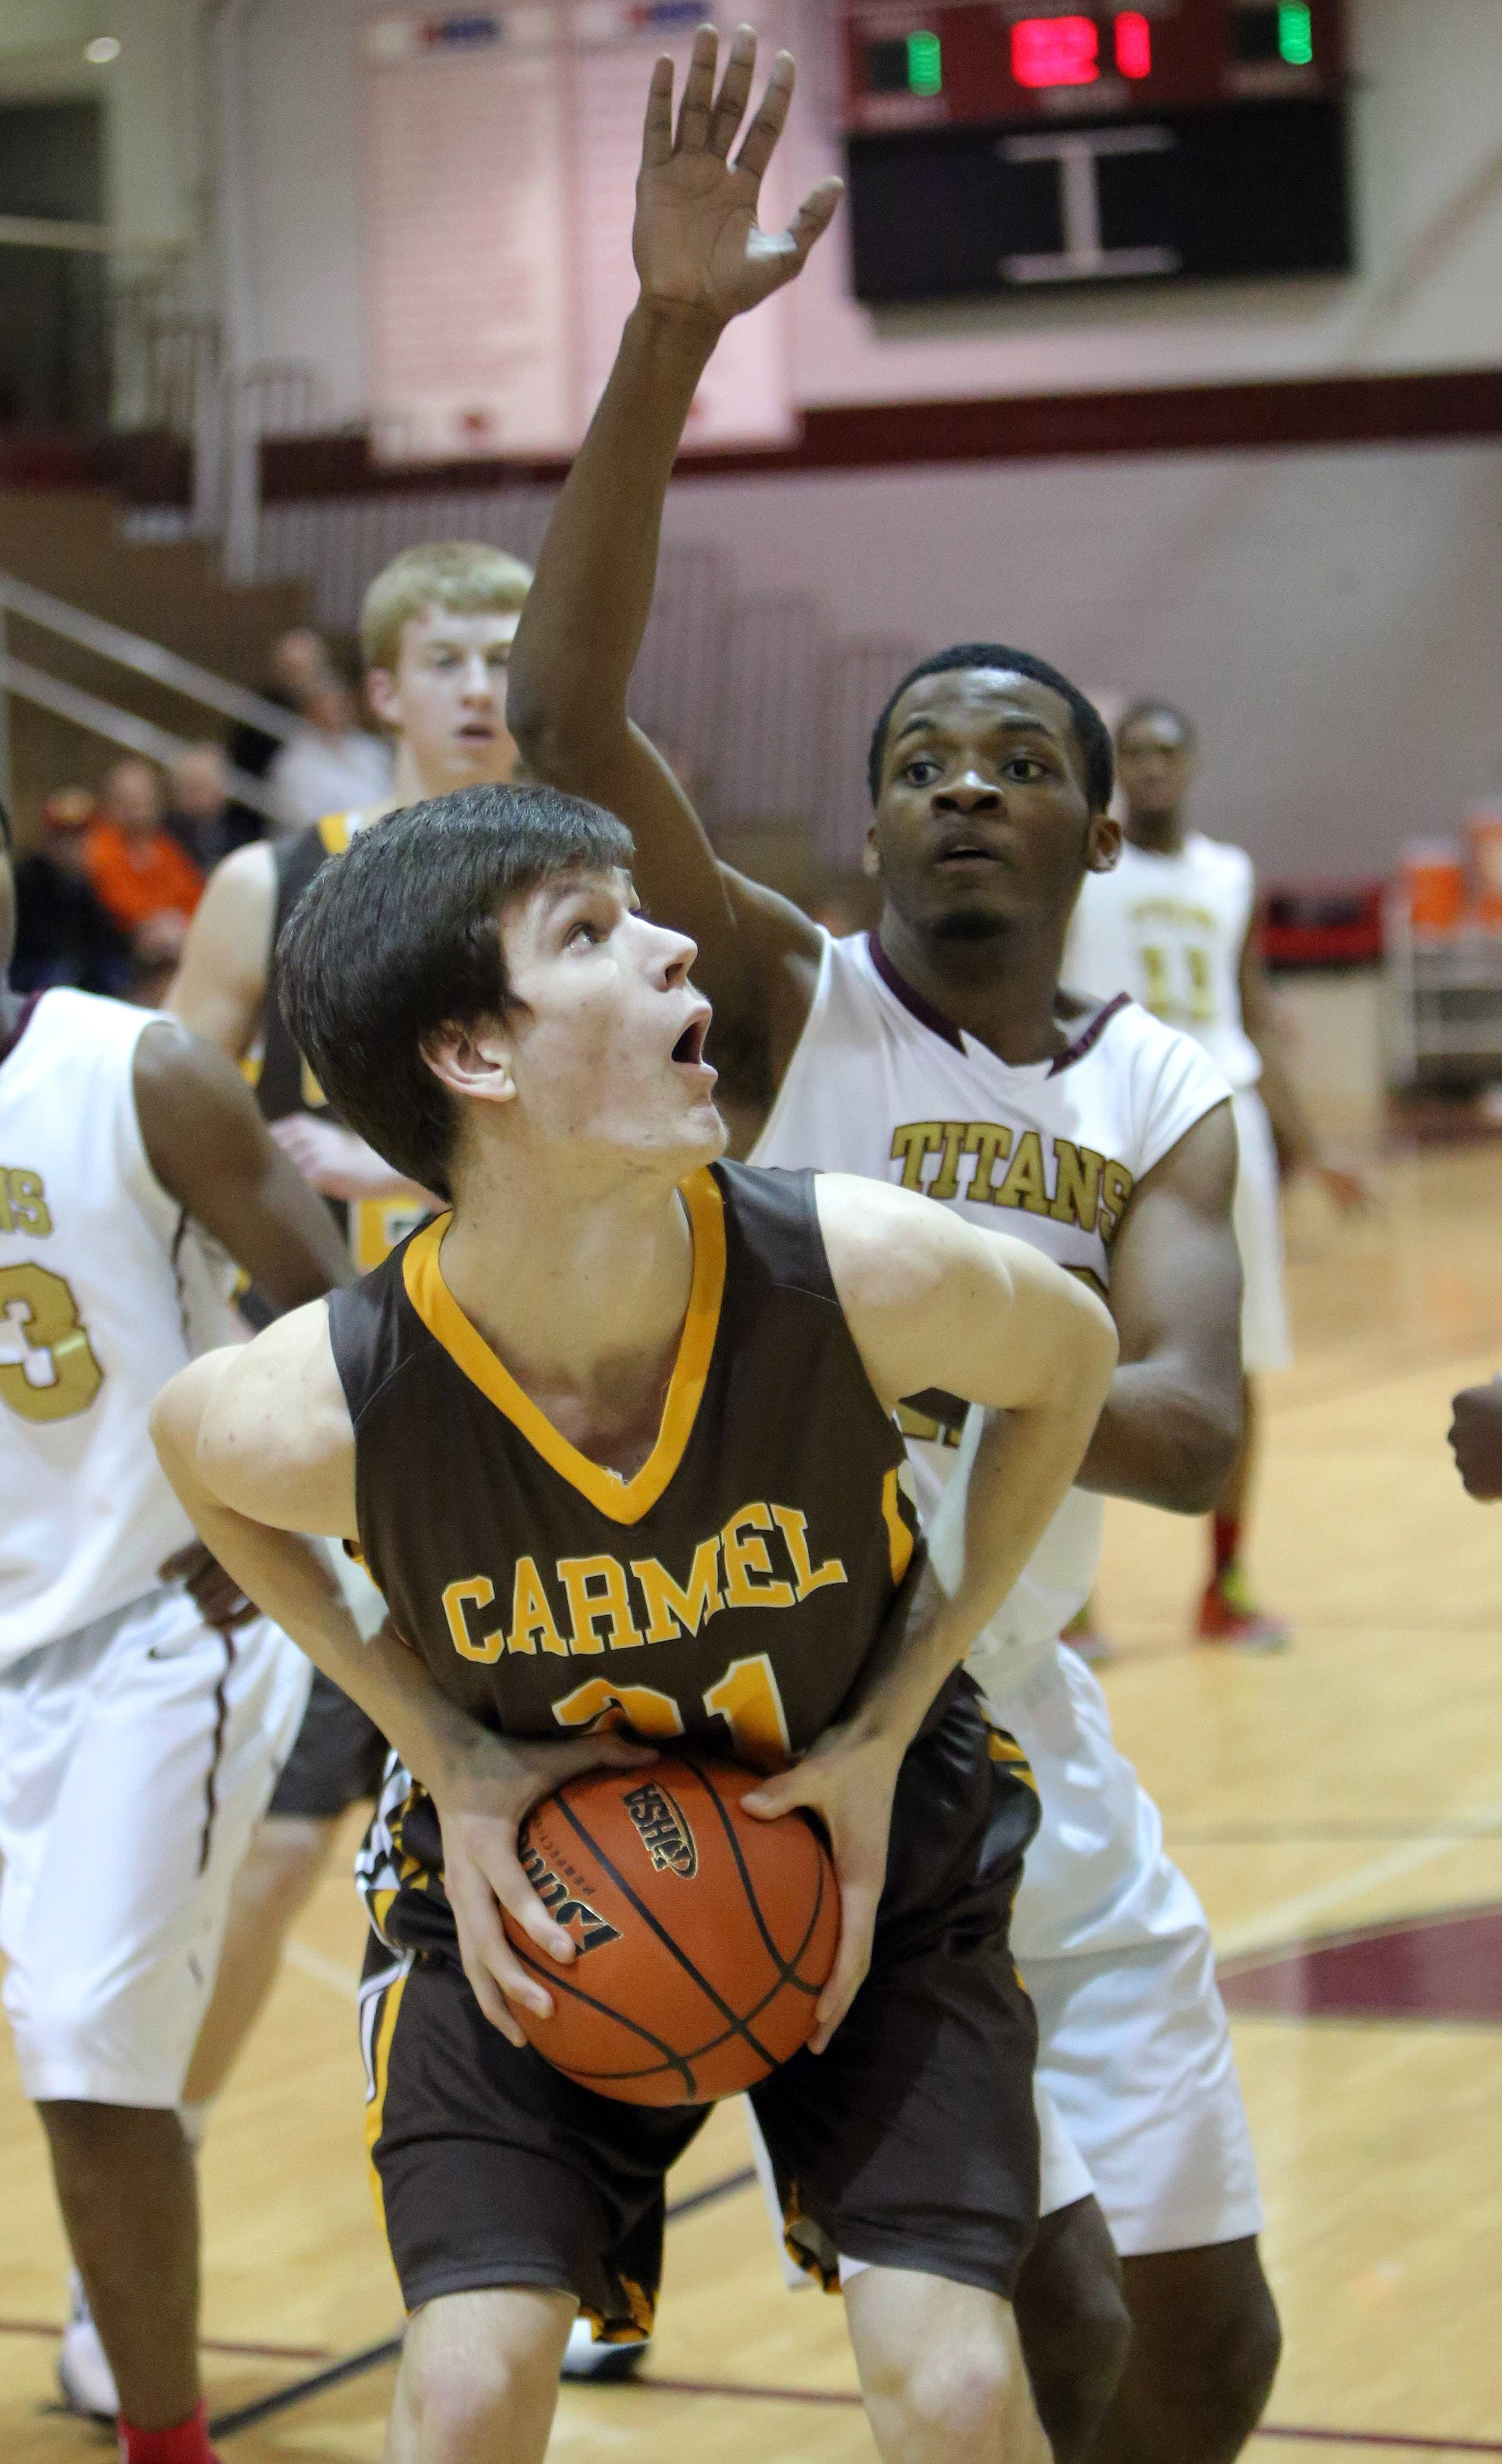 Carmel's Jack George, left, looks to shoot on Uplift's Jamaya Wyatt .